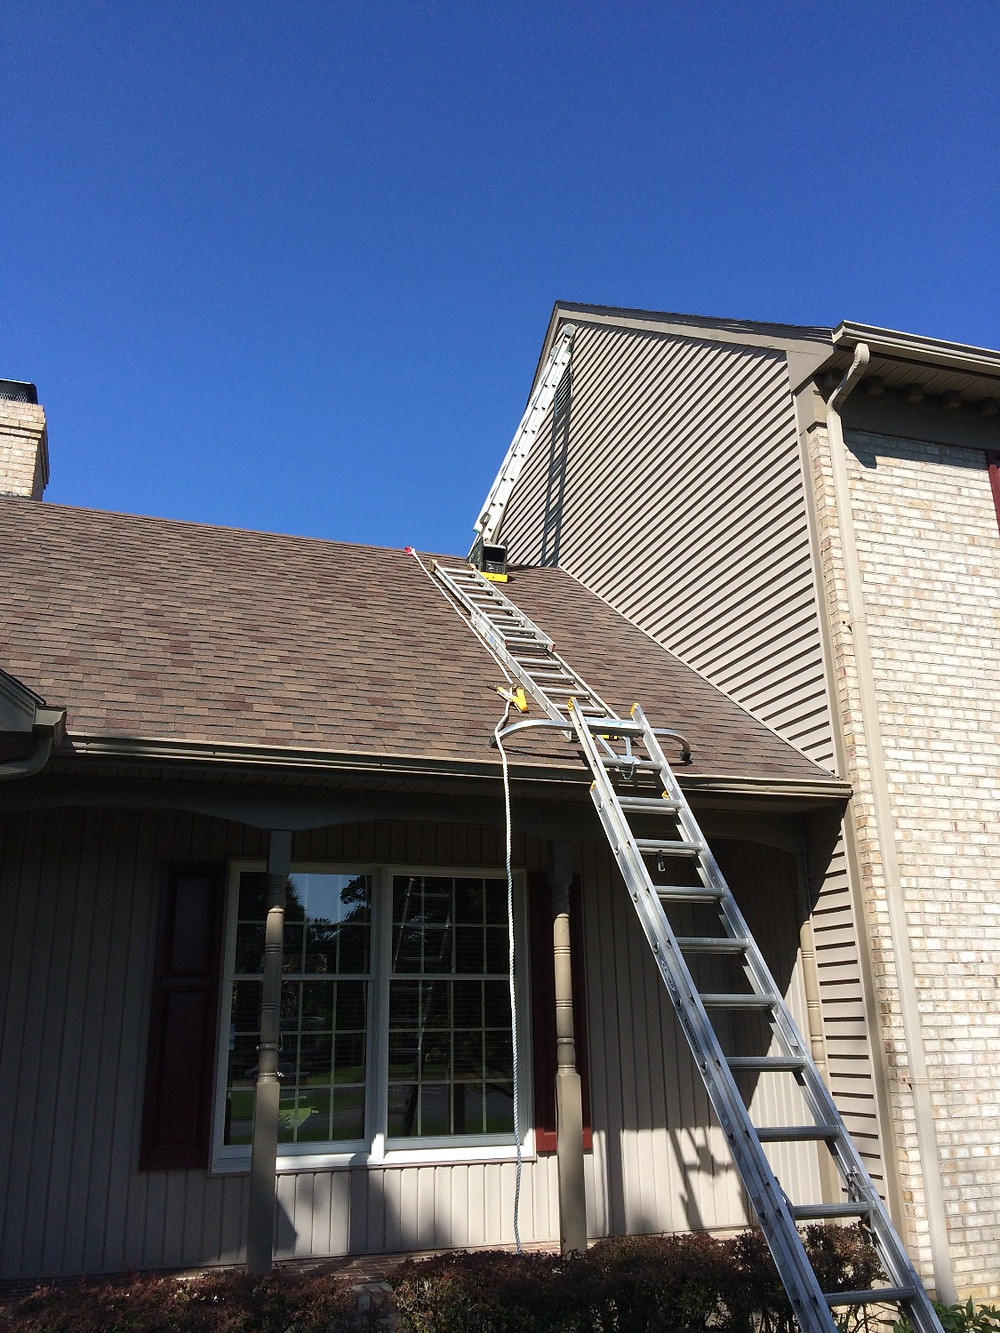 Complete roof setup for painting fascia